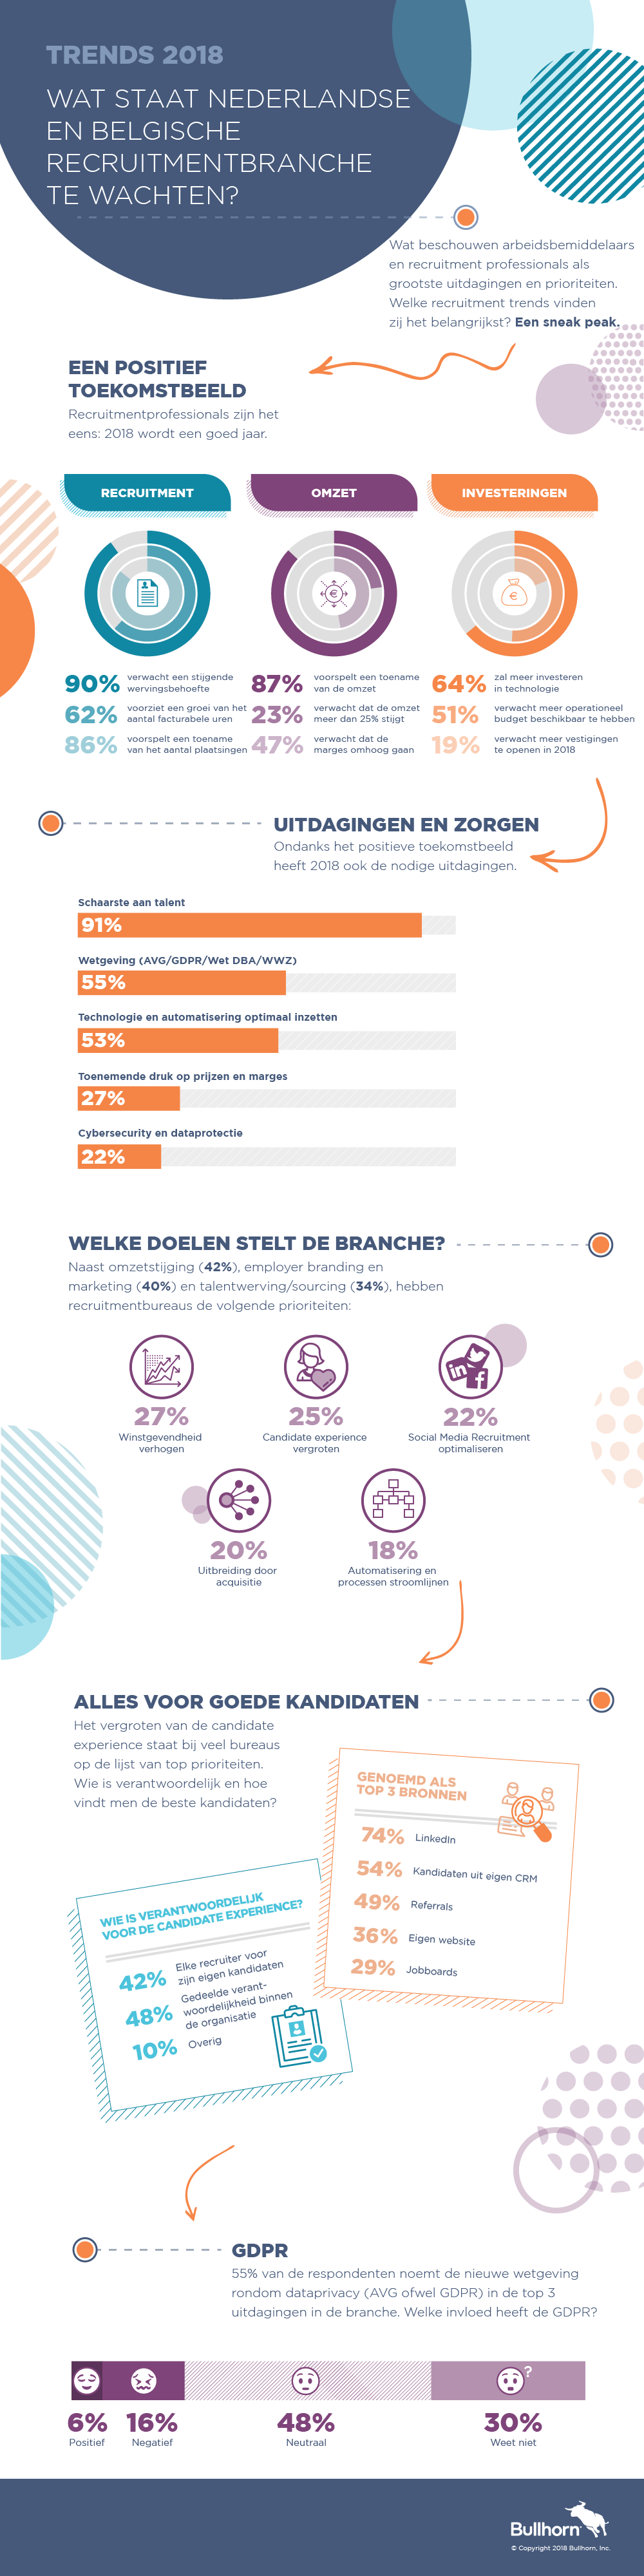 Recruitment Trends voor Bureaus 2018 Infographic